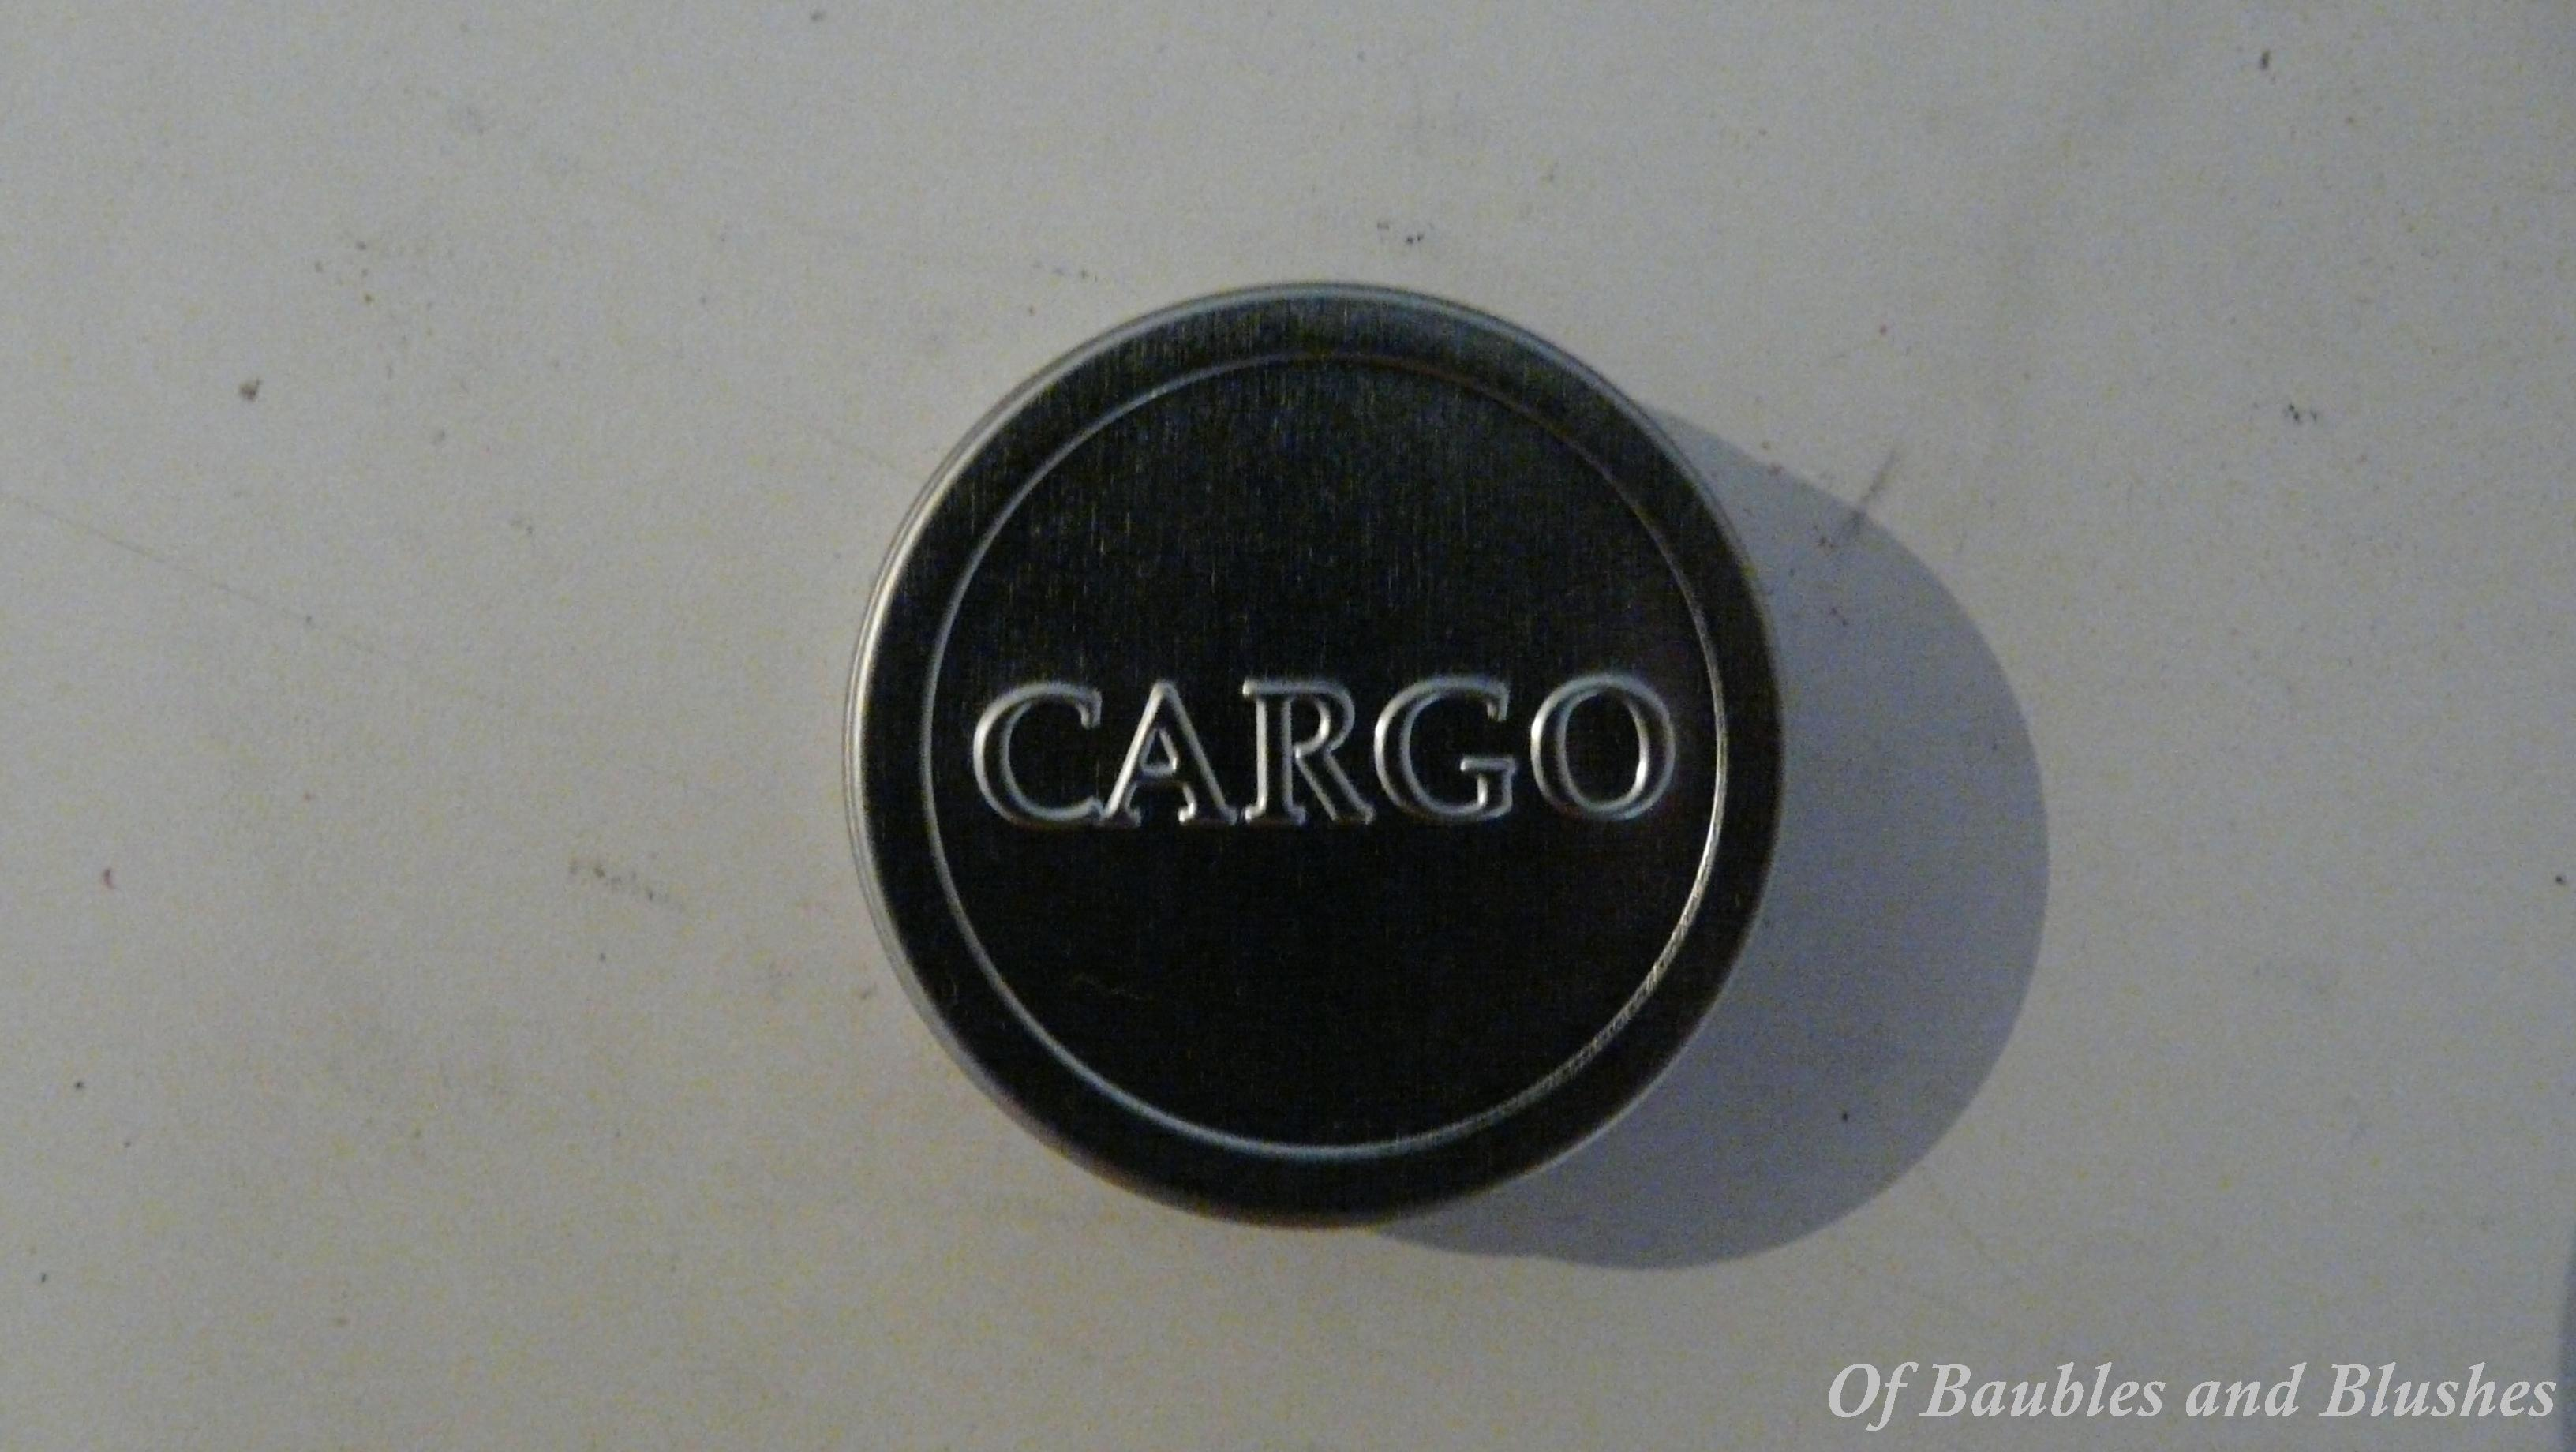 Cargo eyeshadow duo tin